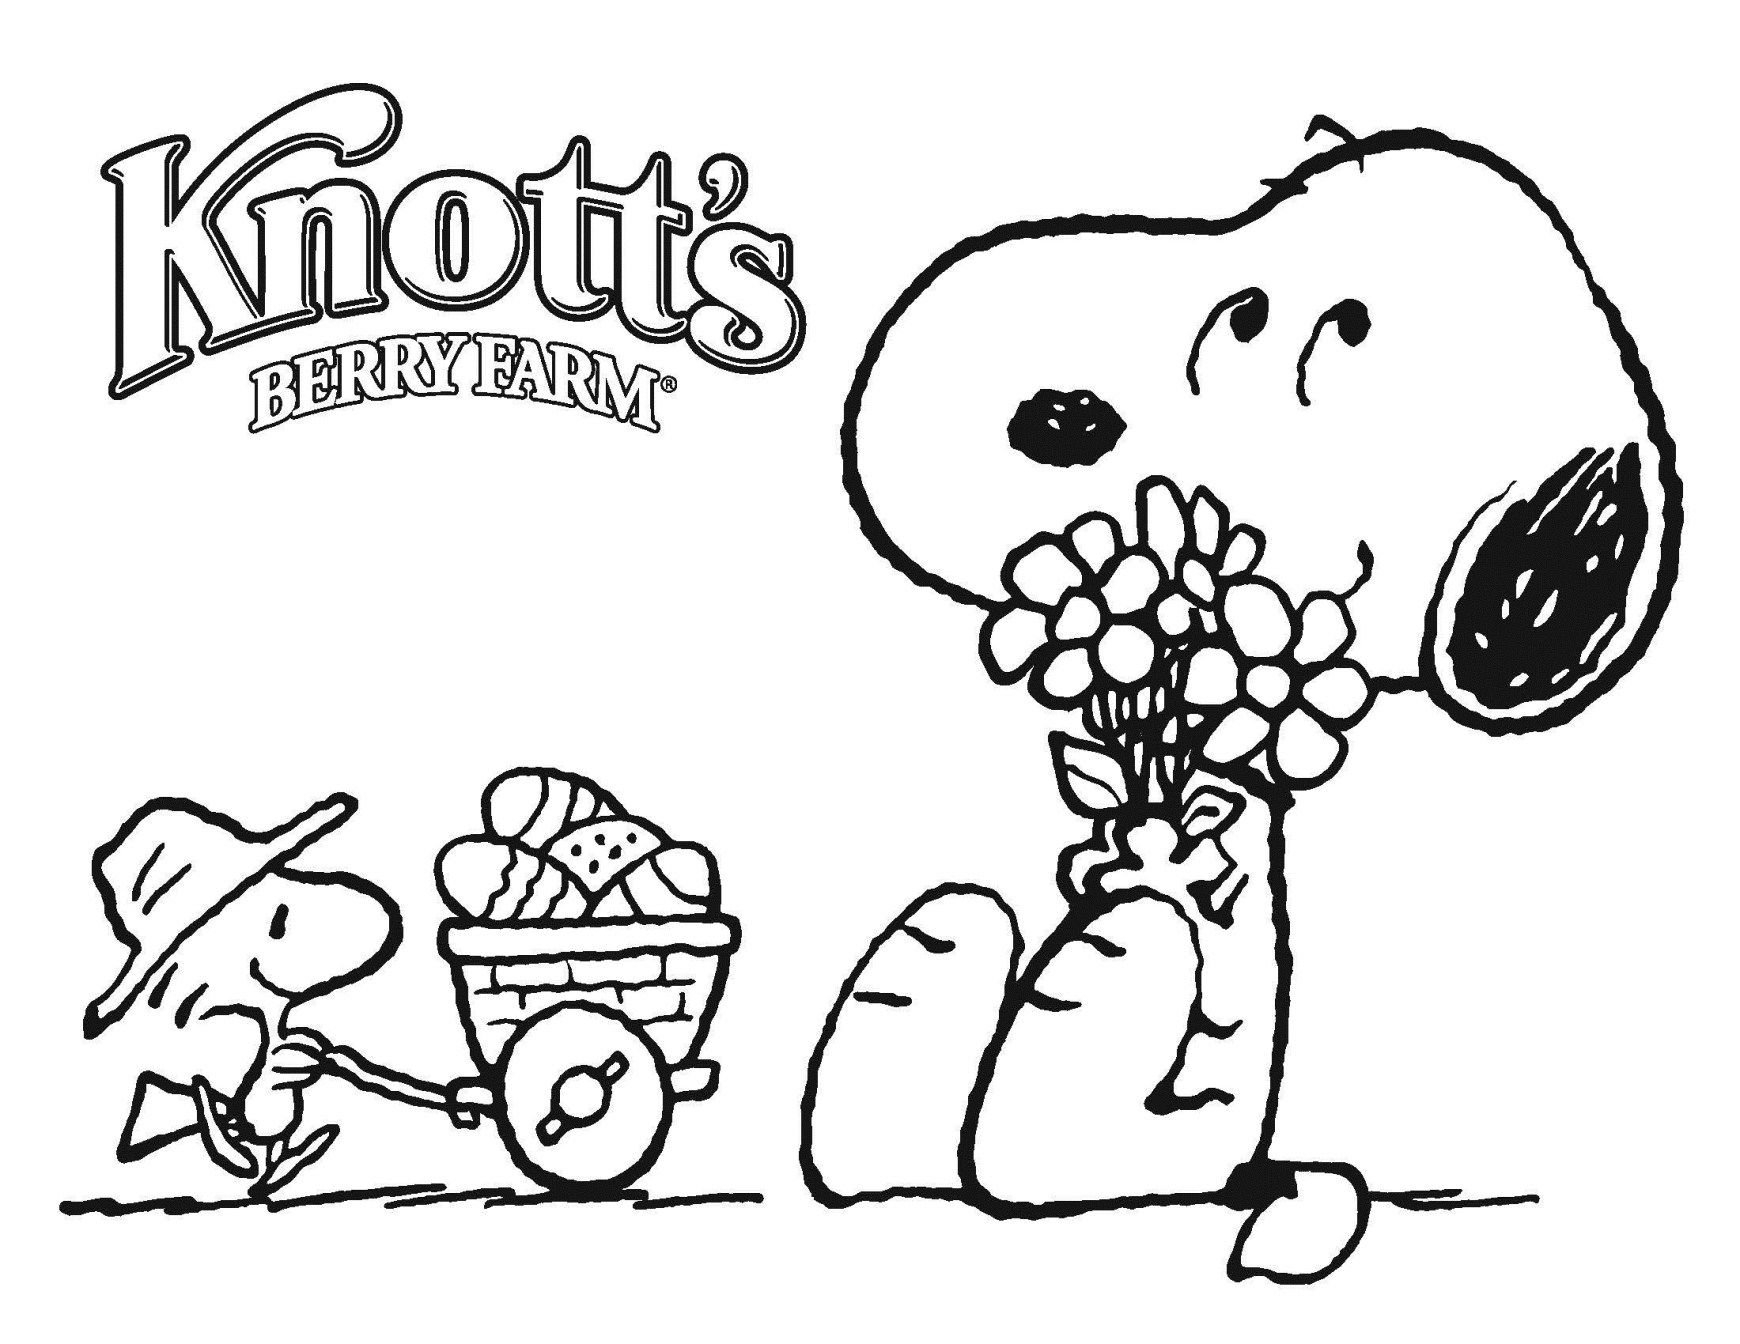 Peanuts Coloring Pages Free Printable Snoopy Coloring Pages Free Printable Snoopy Images